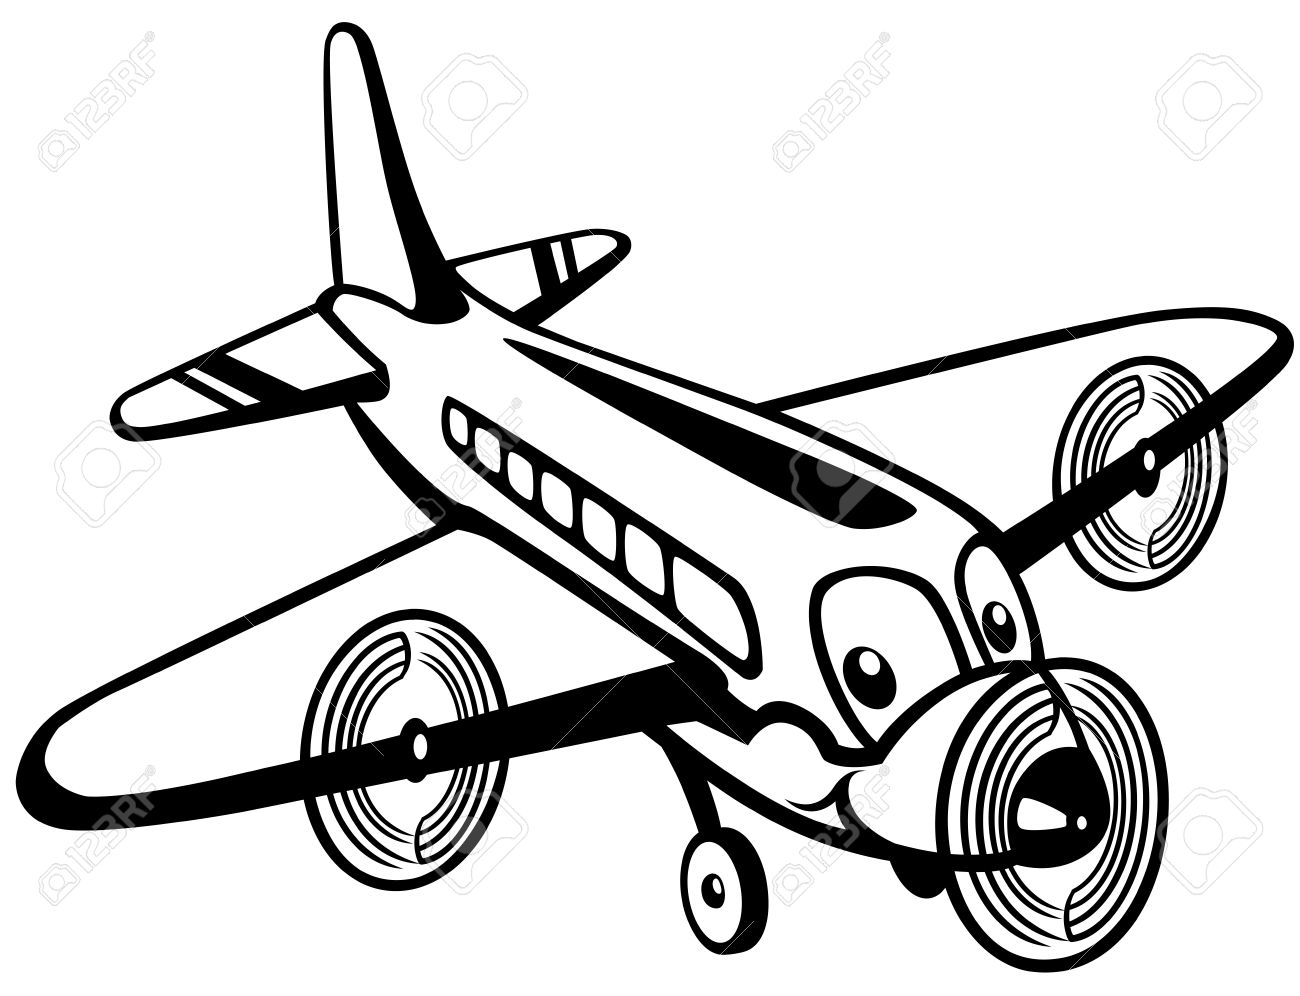 Airplane with tail wheel clipart black and white clip art free library Black And White Airplane Pictures | Free download best Black And ... clip art free library